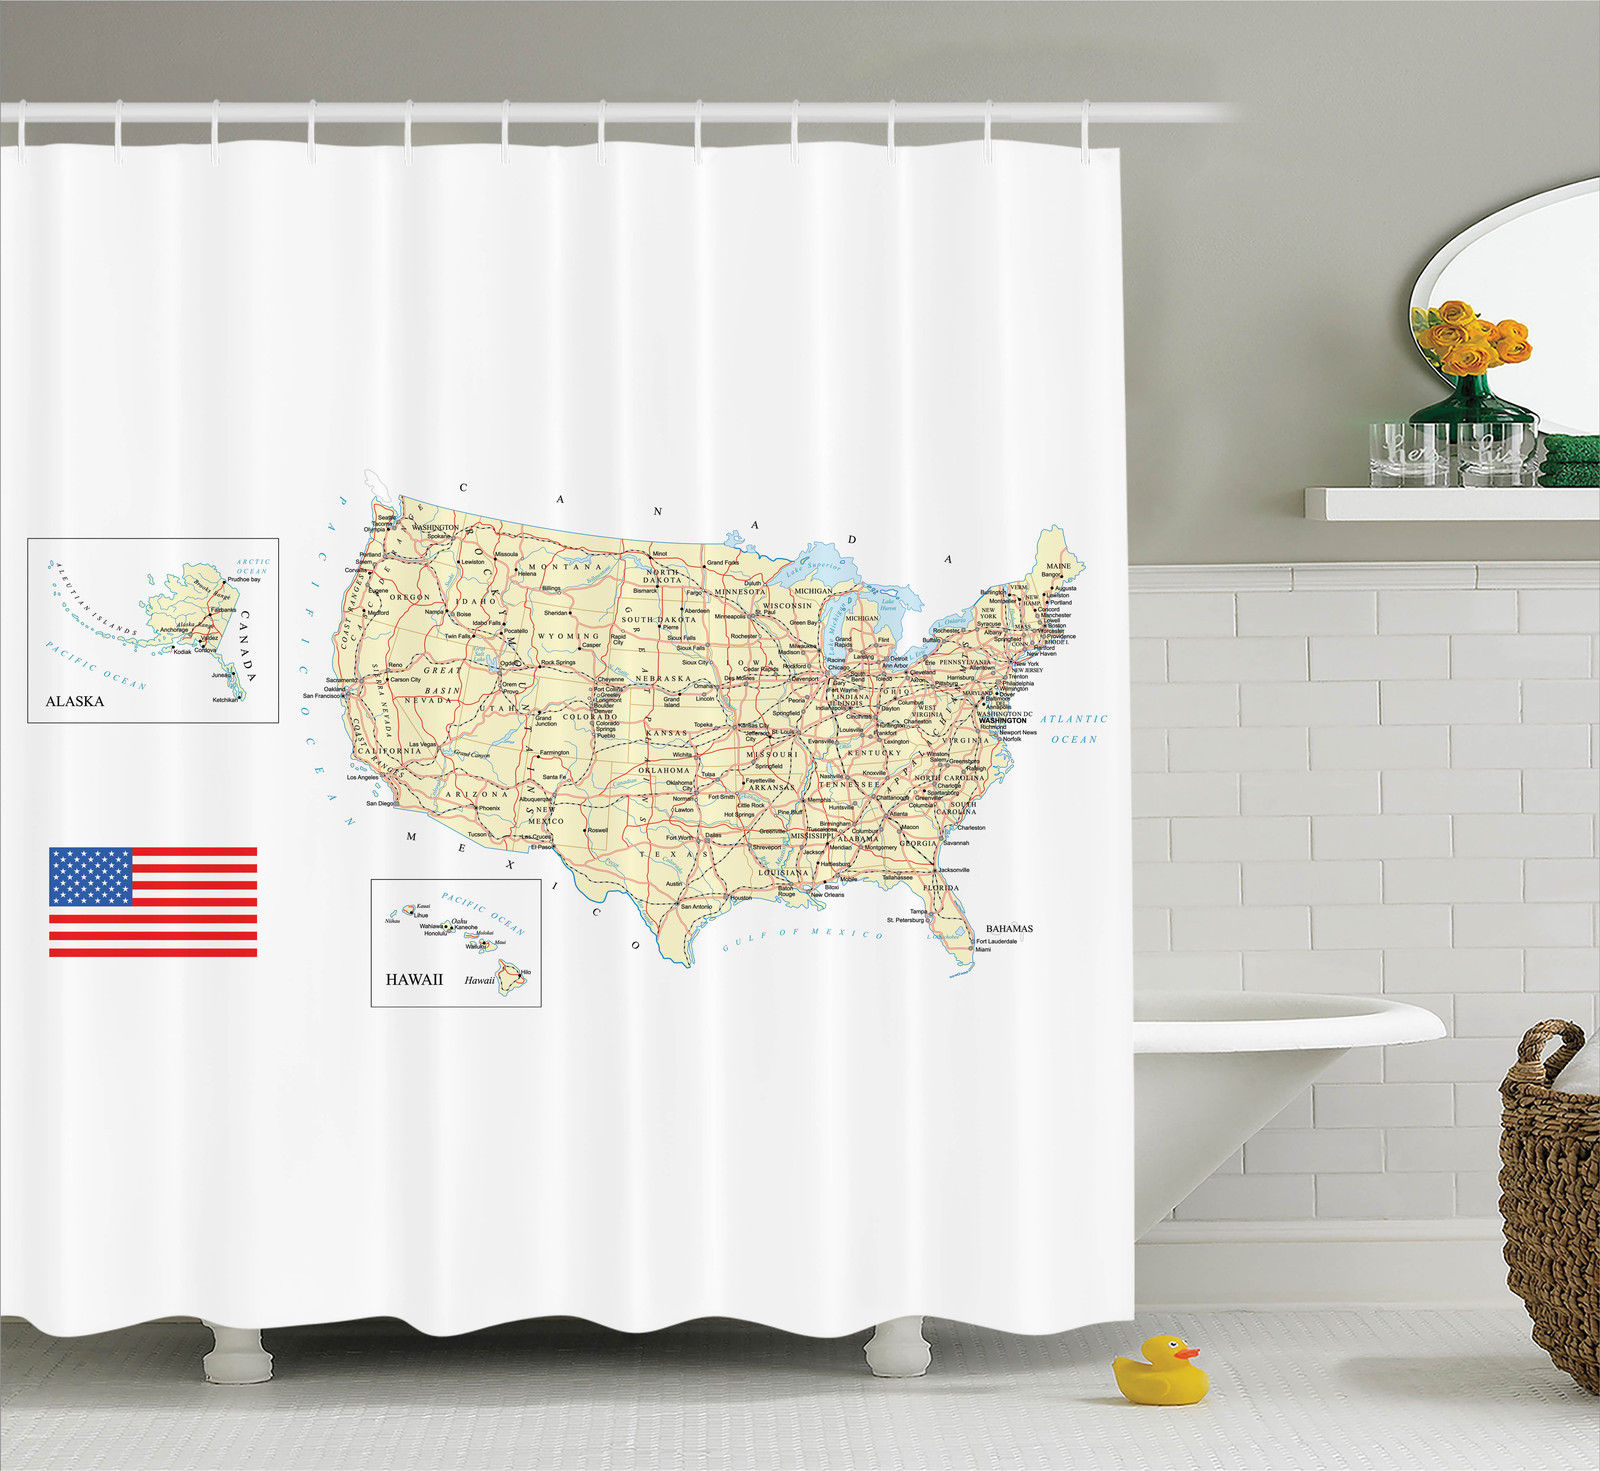 Wanderlust Decor Usa Detailed Map Topographic Contours Country And Land Names Roads, Railways., Bathroom Accessories, 69W X 84L Inches Extra Long, By Ambesonne